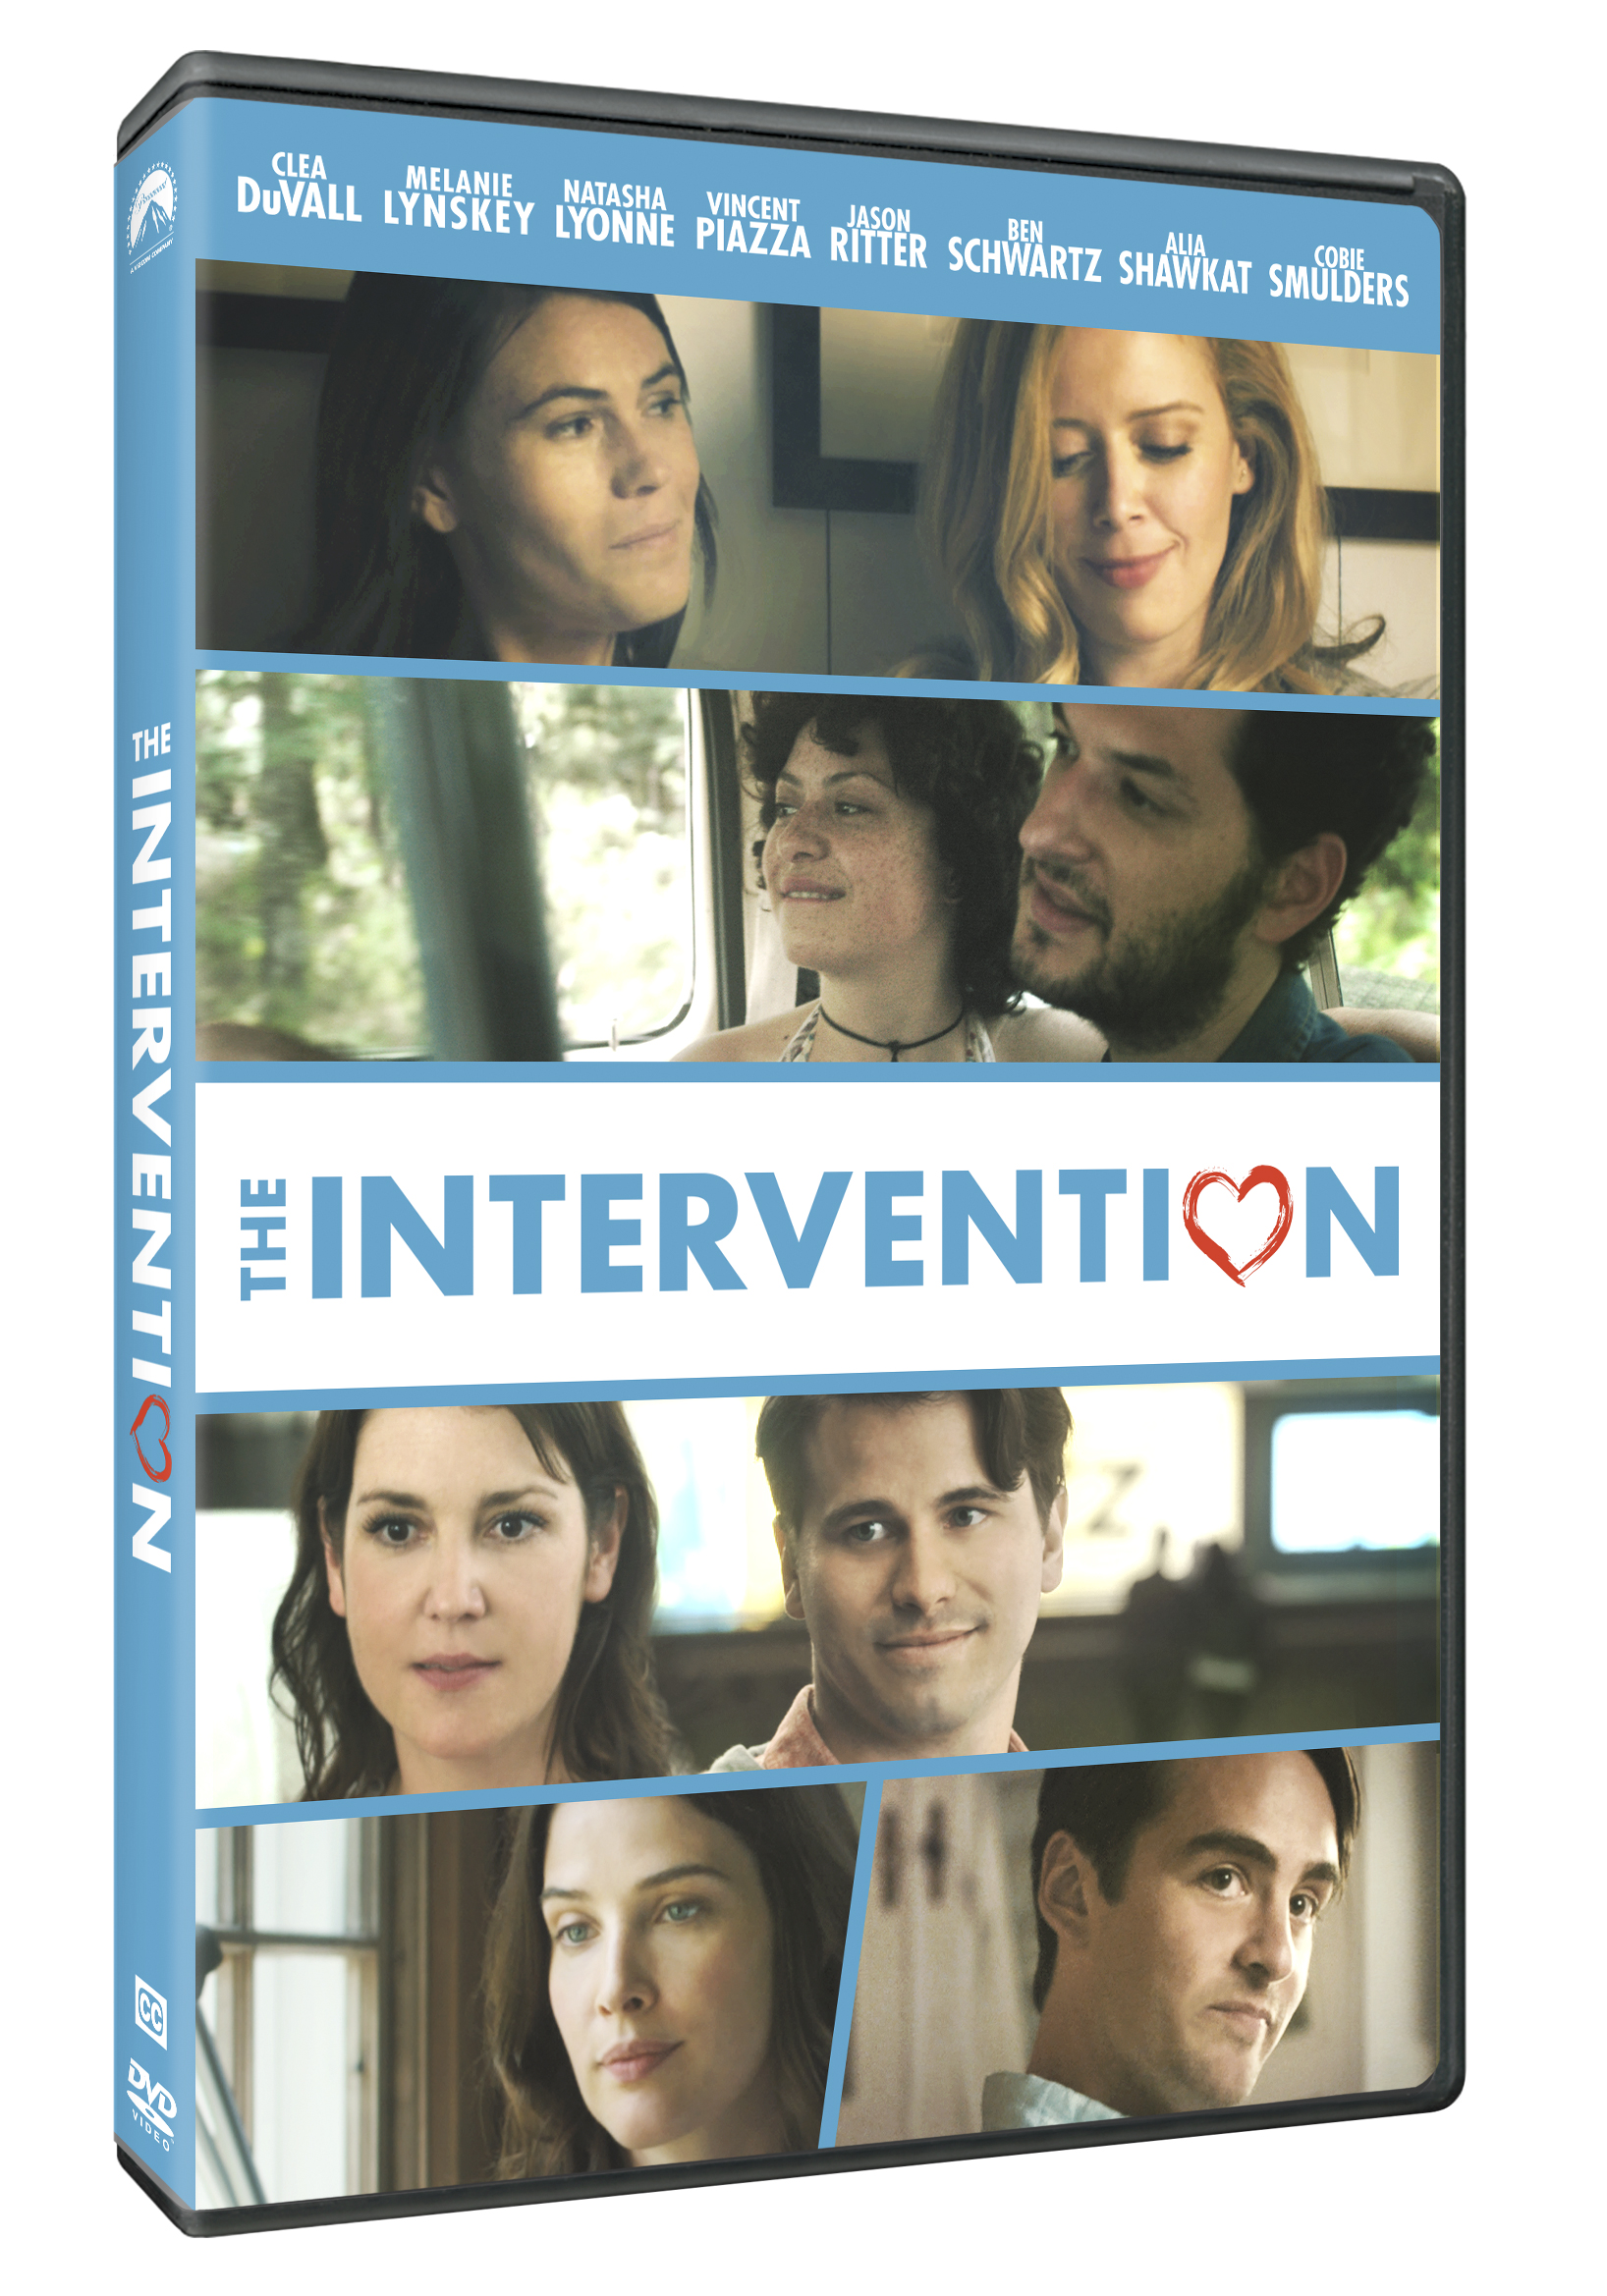 Intervention Blu-ray